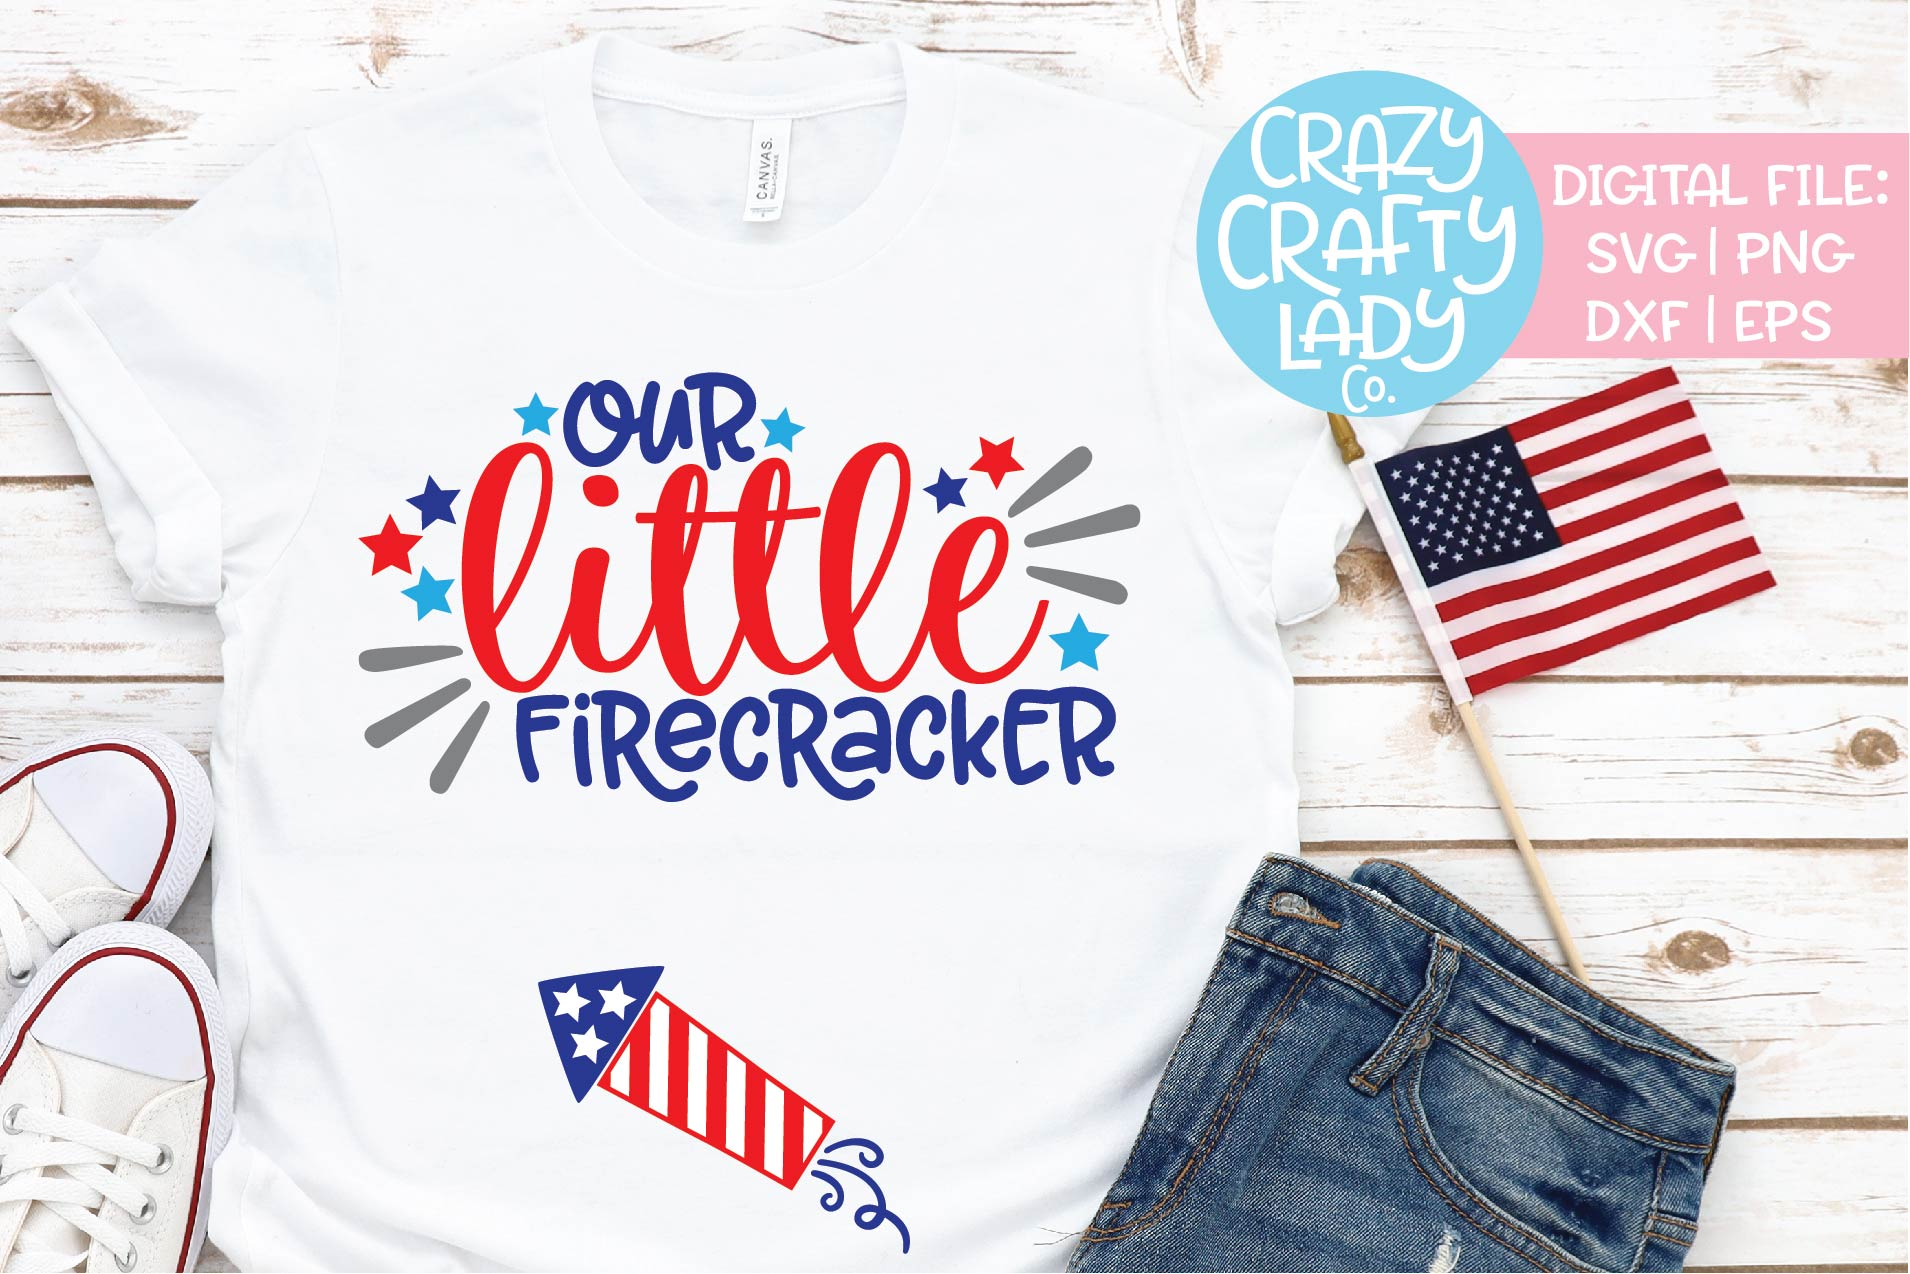 Our Little Firecracker July 4th Svg Dxf Eps Png Cut File